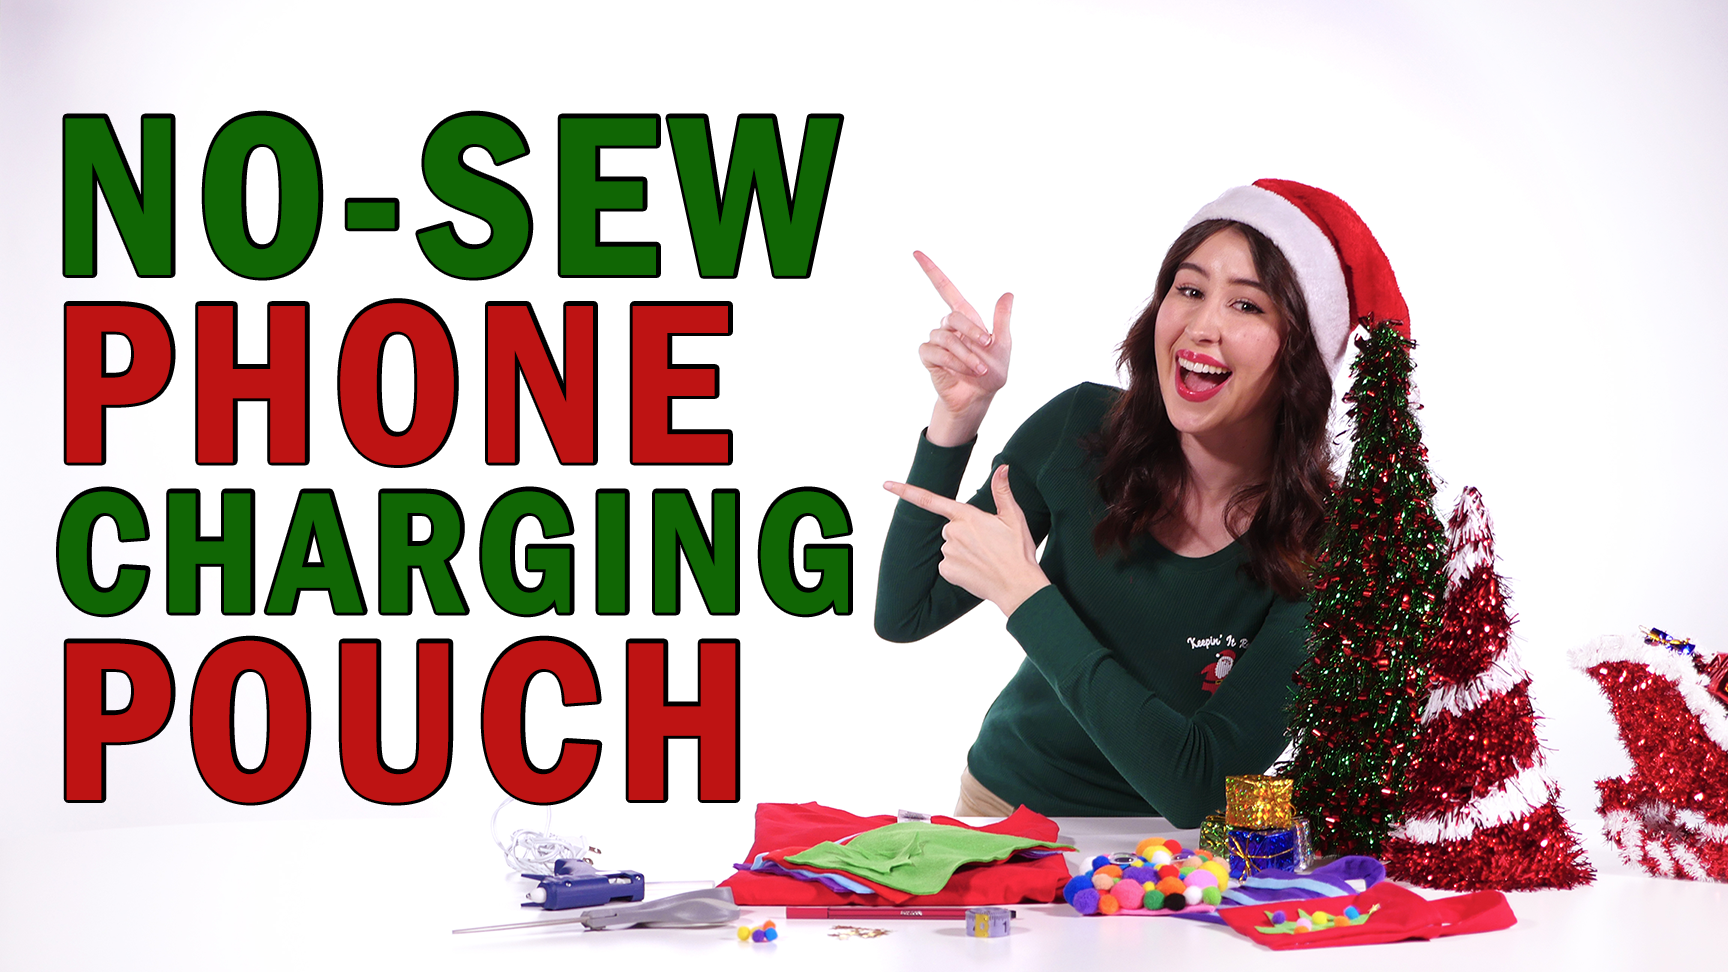 Make-It-Monday: No Sew Phone Charging Pouch